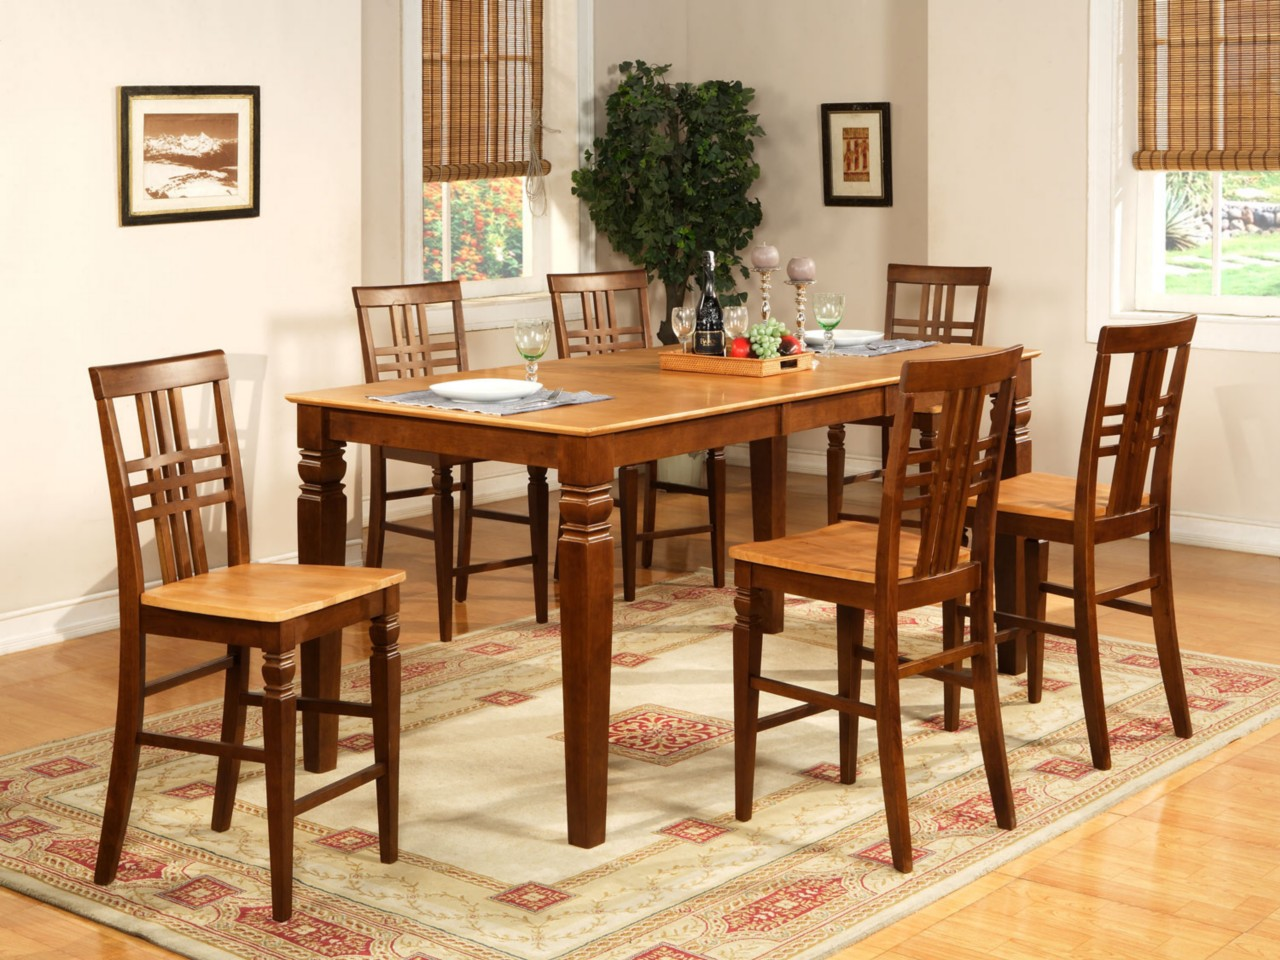 counter height table jofran dining set kitchen table efurnituremart bar top kitchen tables 9PC DINETTE KITCHEN COUNTER HEIGHT TABLE WITH 8 CHAIRS IN ESPRESSO